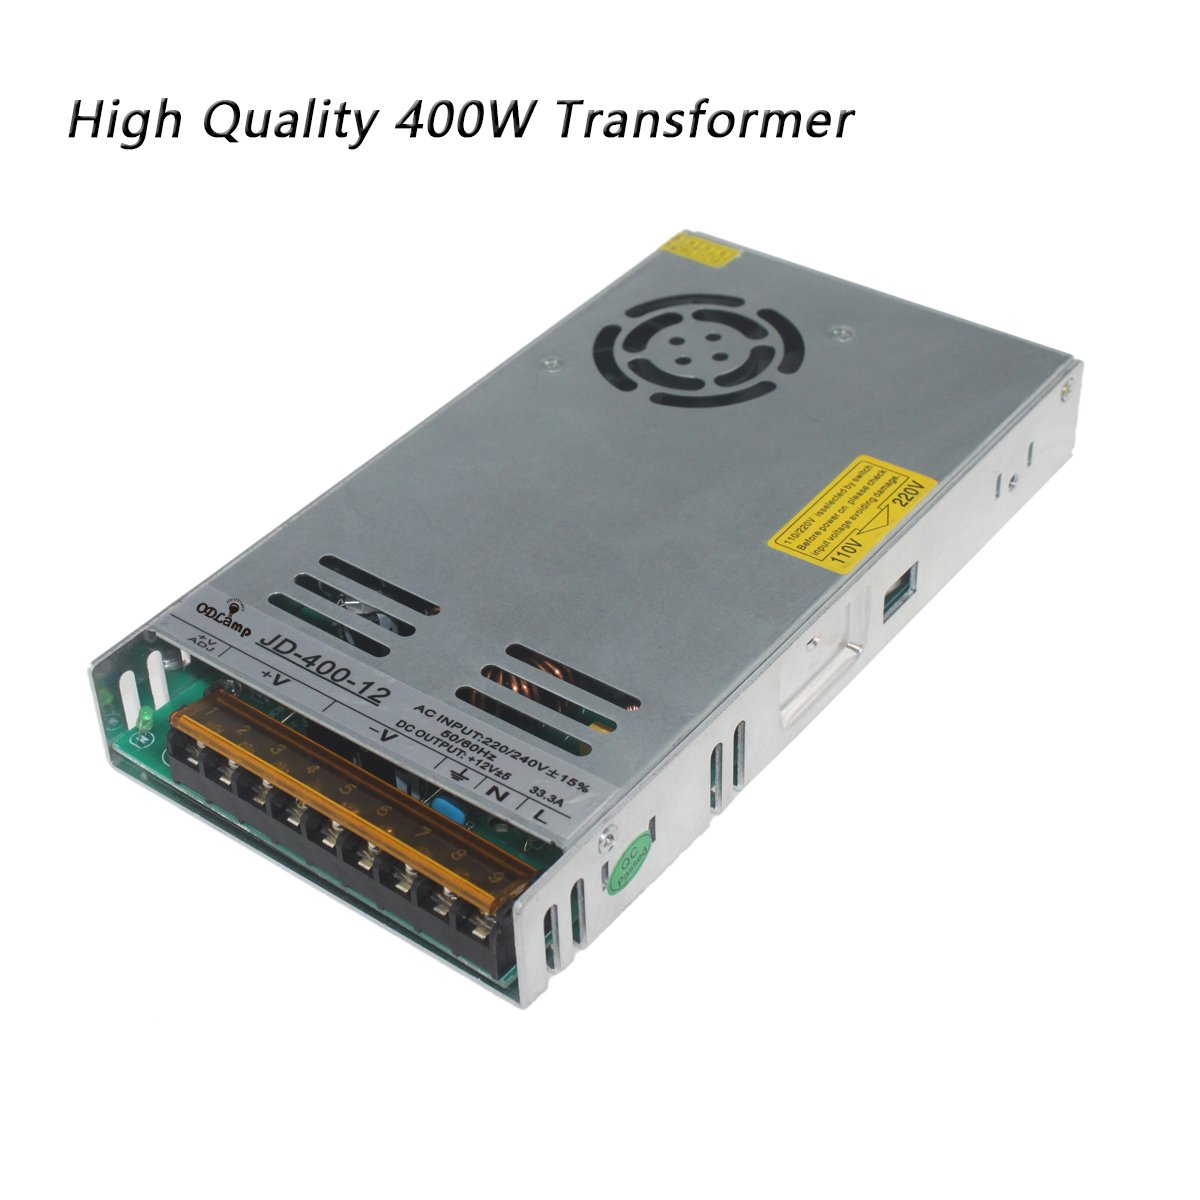 DC 12V 120W 250W 400W 500W Led Transformer Power Supply Driver Constant Voltage LED For Led Strip Led Module Lights (400W)